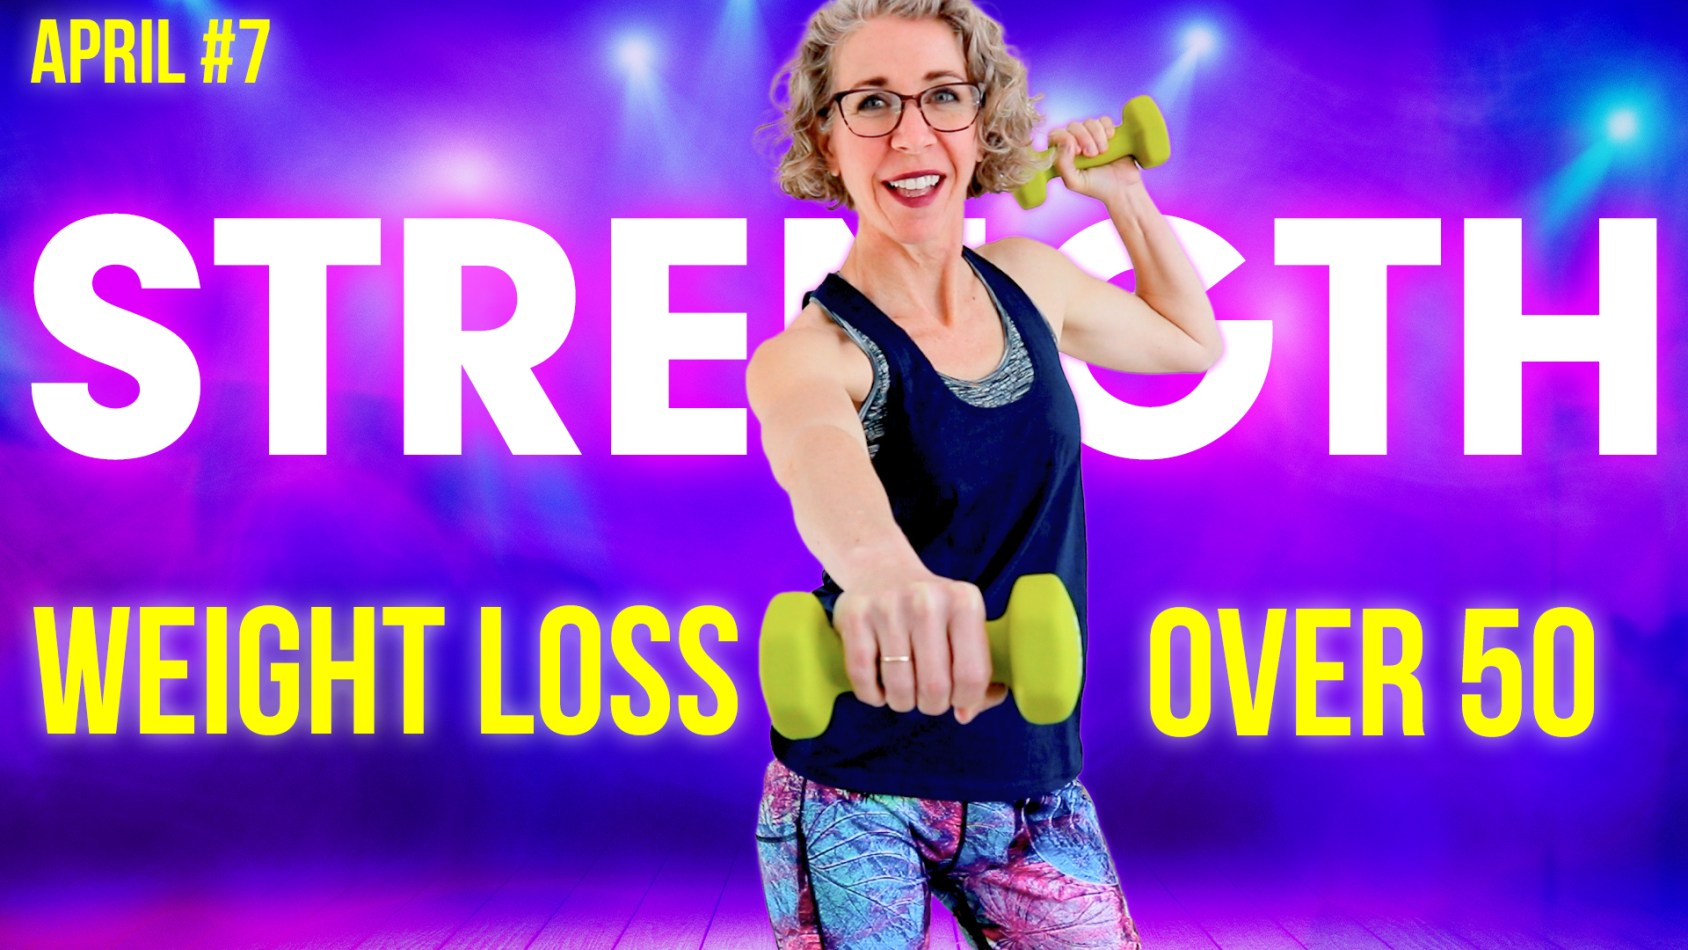 DUMBBELL Strength Workout! (Perfect for Osteoporosis) ???? April Day 7